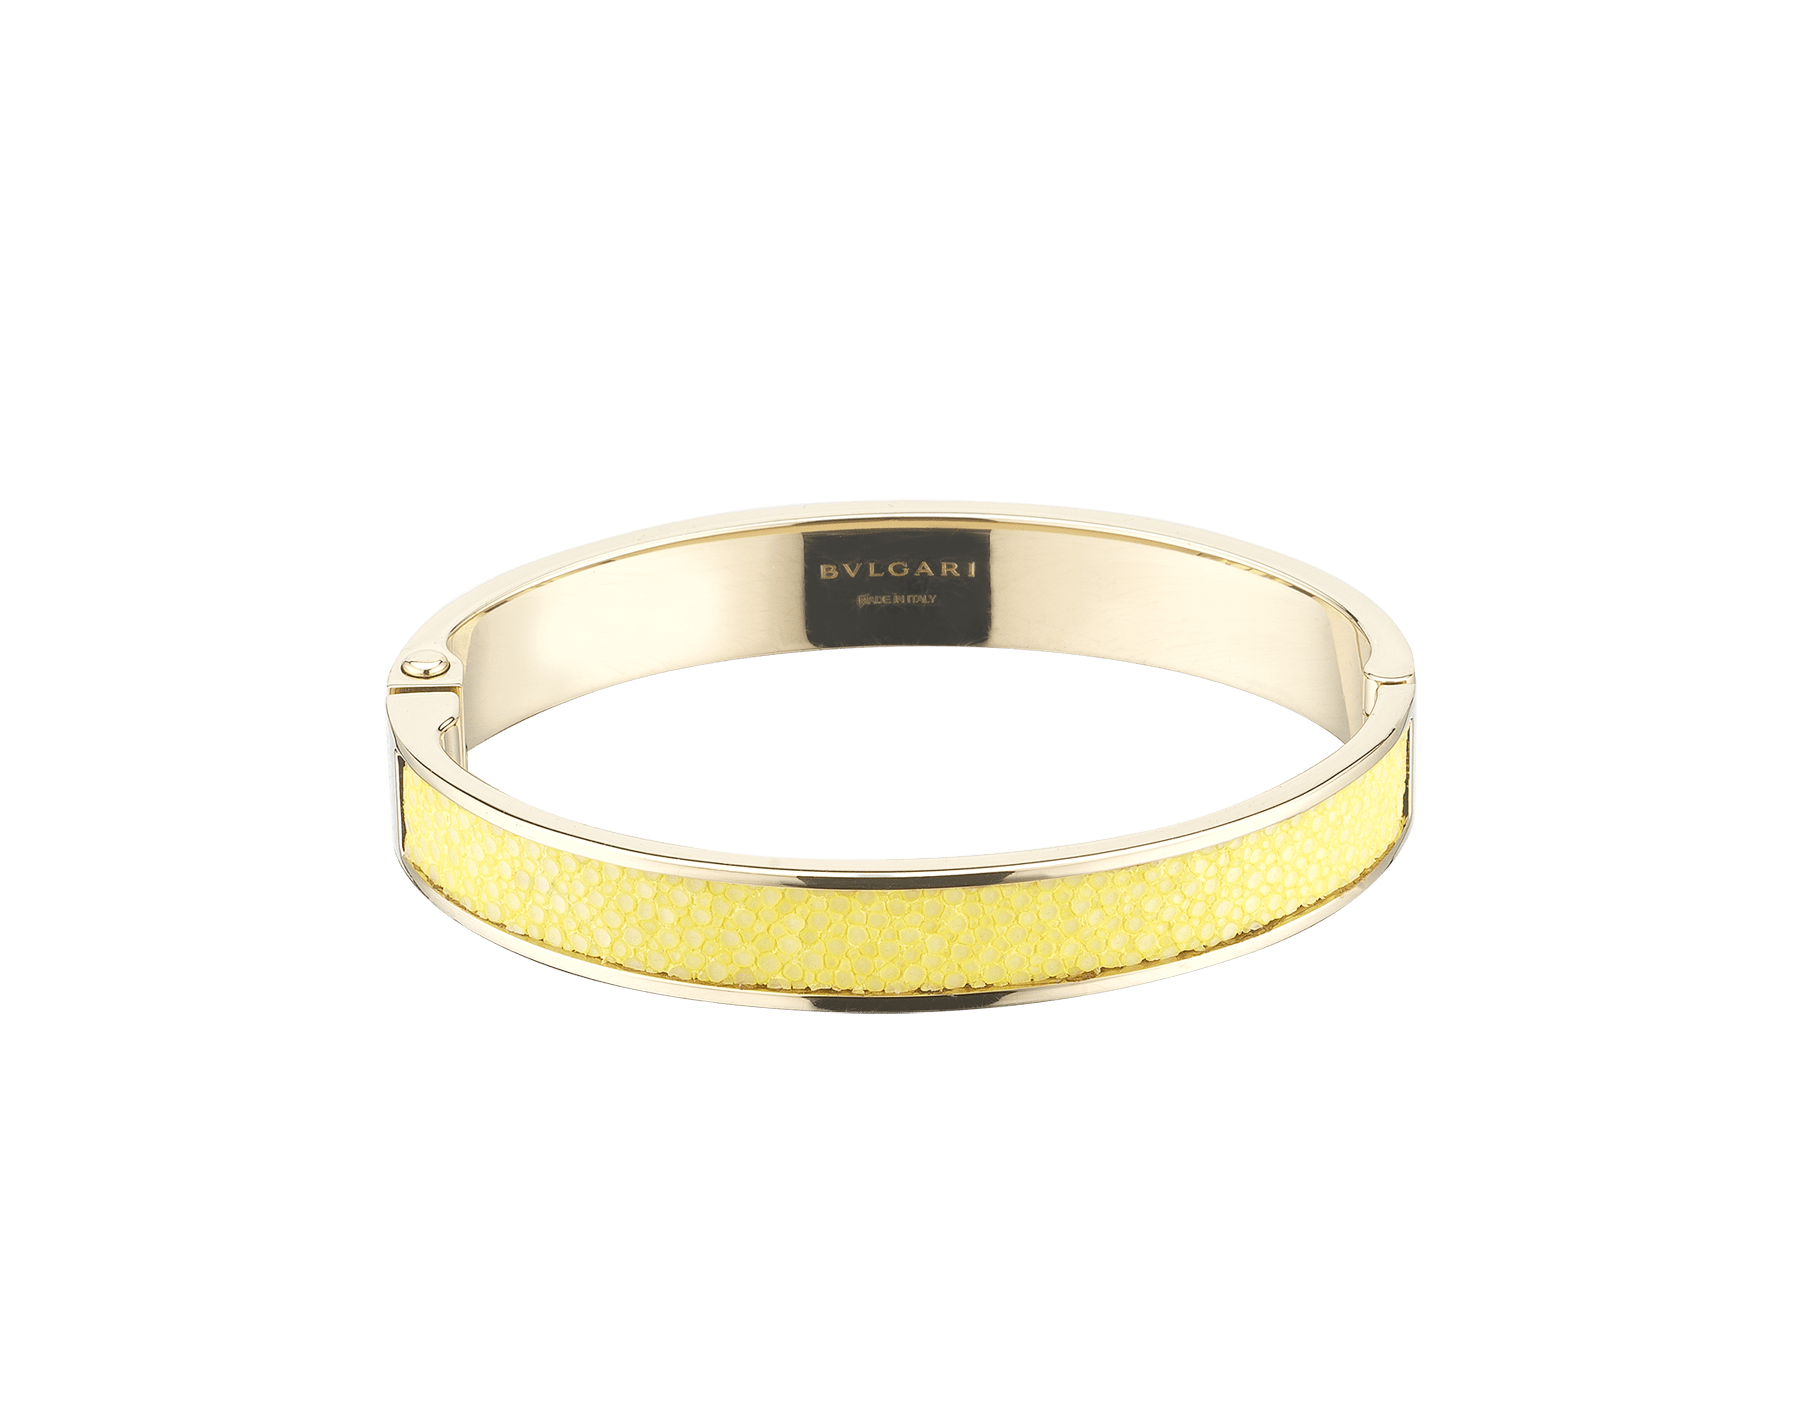 """BVLGARI BVLGARI"" new bangle bracelet in light gold with an Daisy Topaz yellow galuchat skin insert and a BVLGARI logo hinge closure. Logo engraving in the inner part. HINGEBBBRACLT-MK-DT image 1"